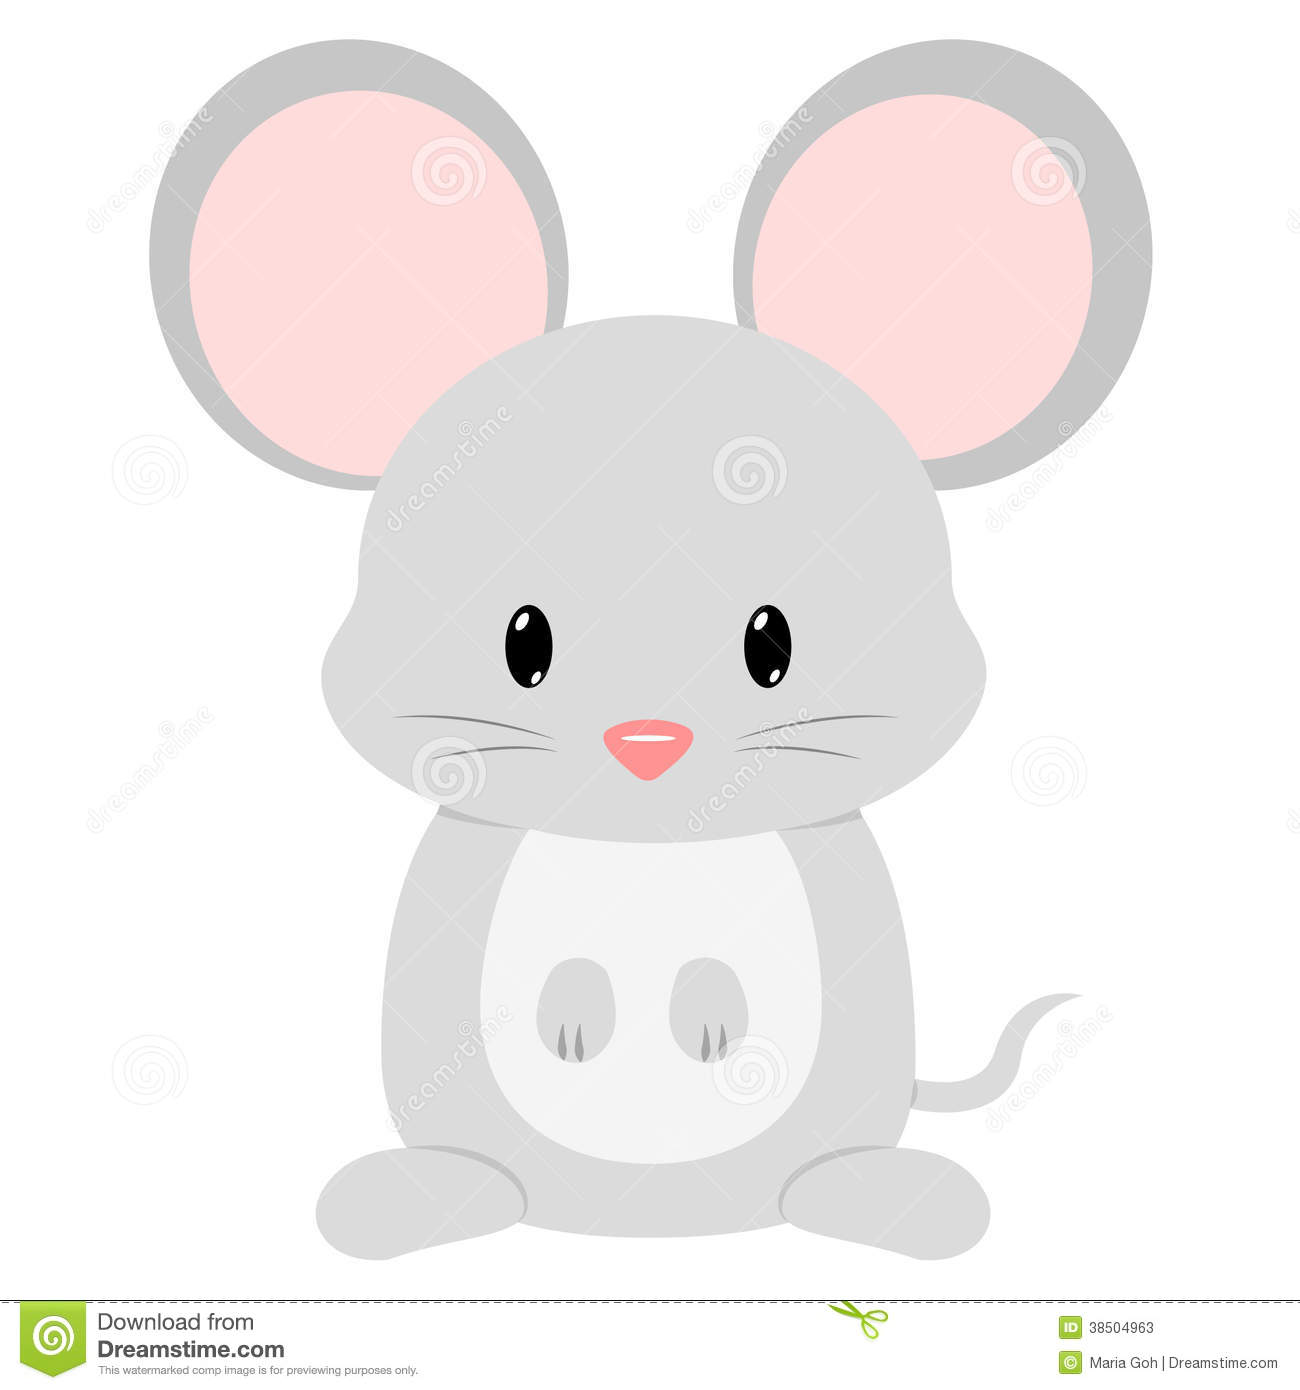 Rodent clipart baby mouse #5